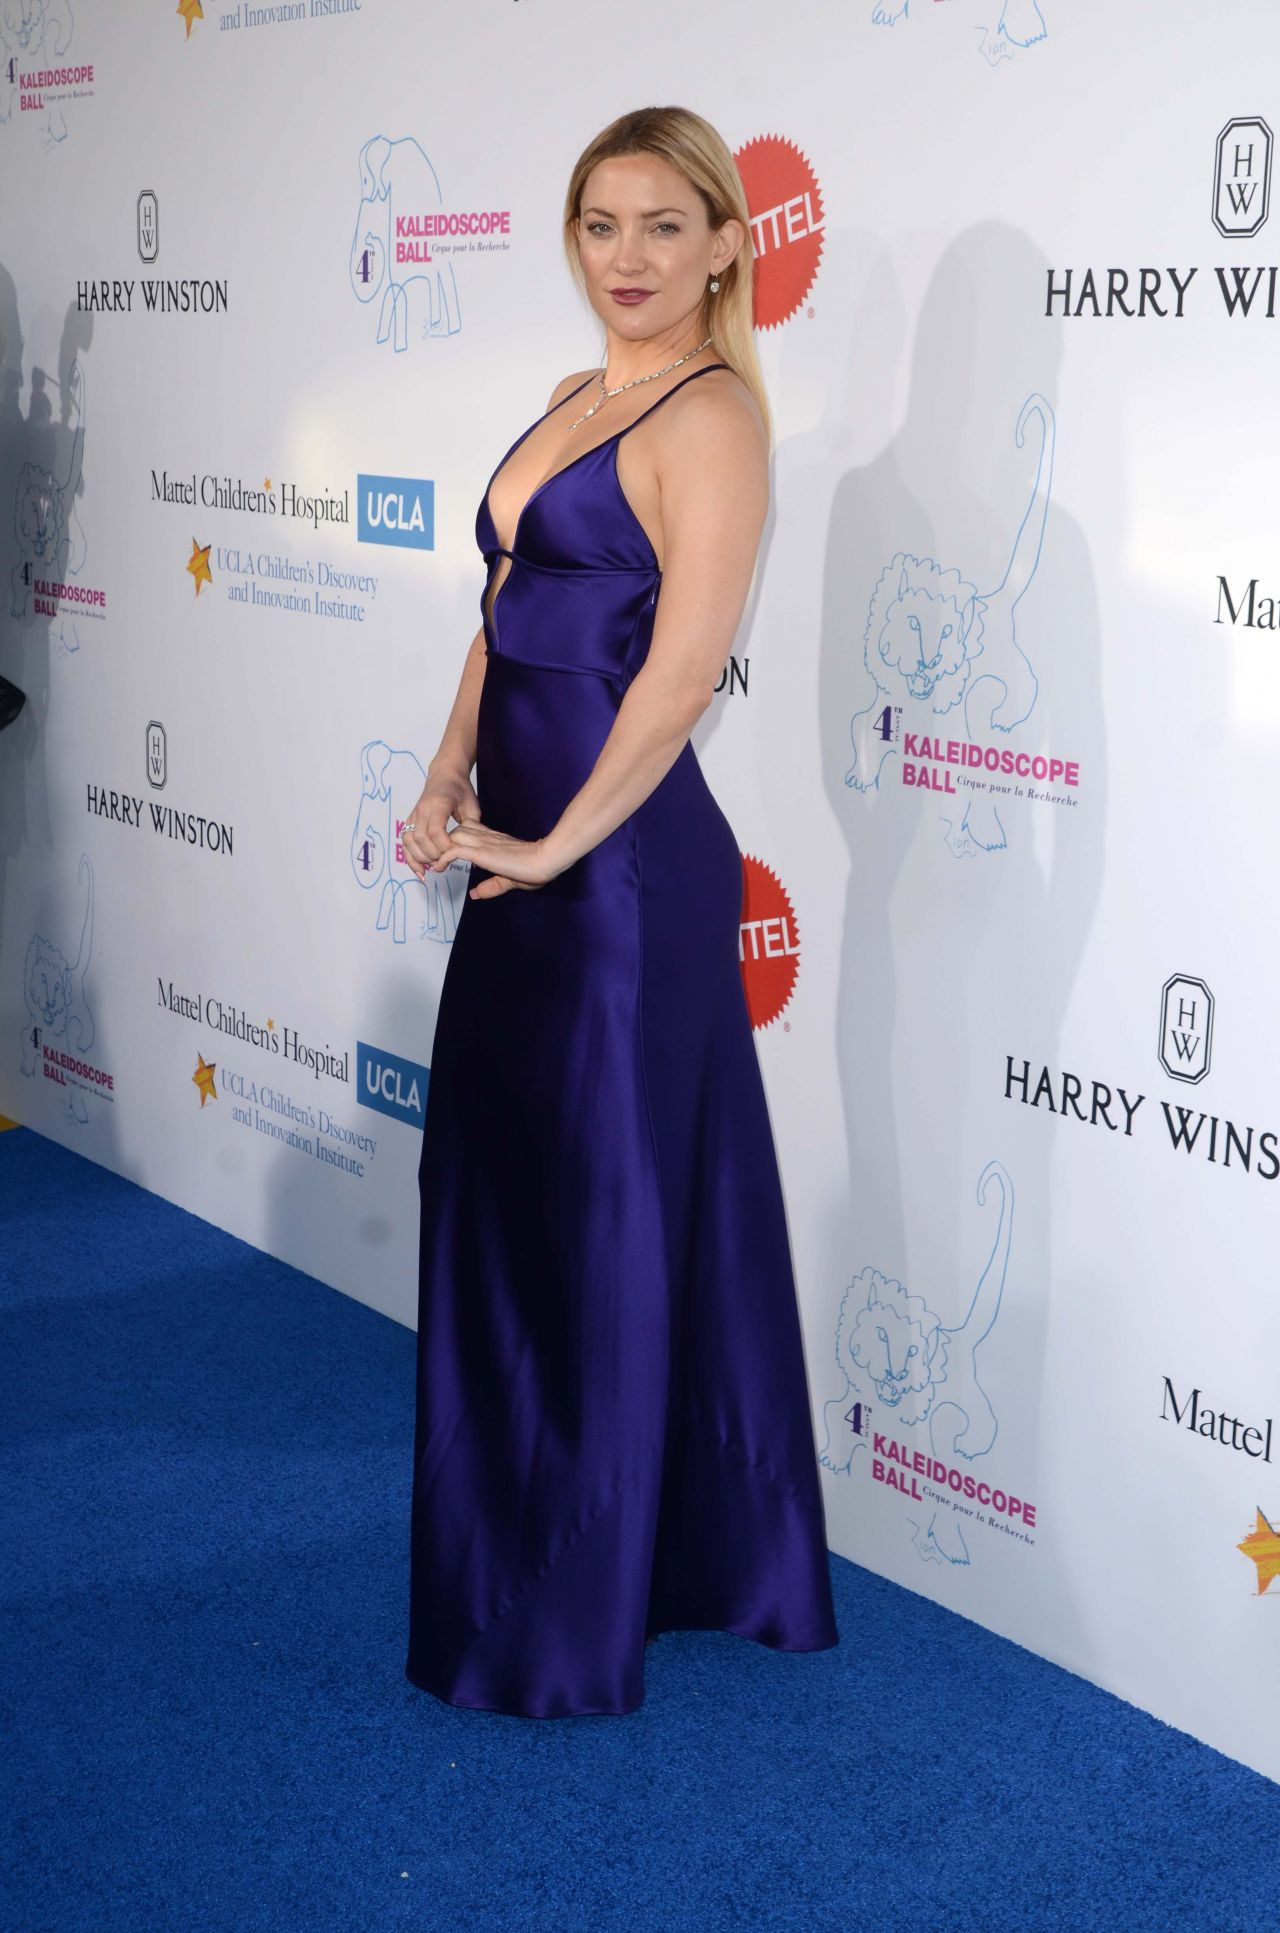 Kate Hudson Hot In Slinky Purple Gown Kaleidoscope Ball